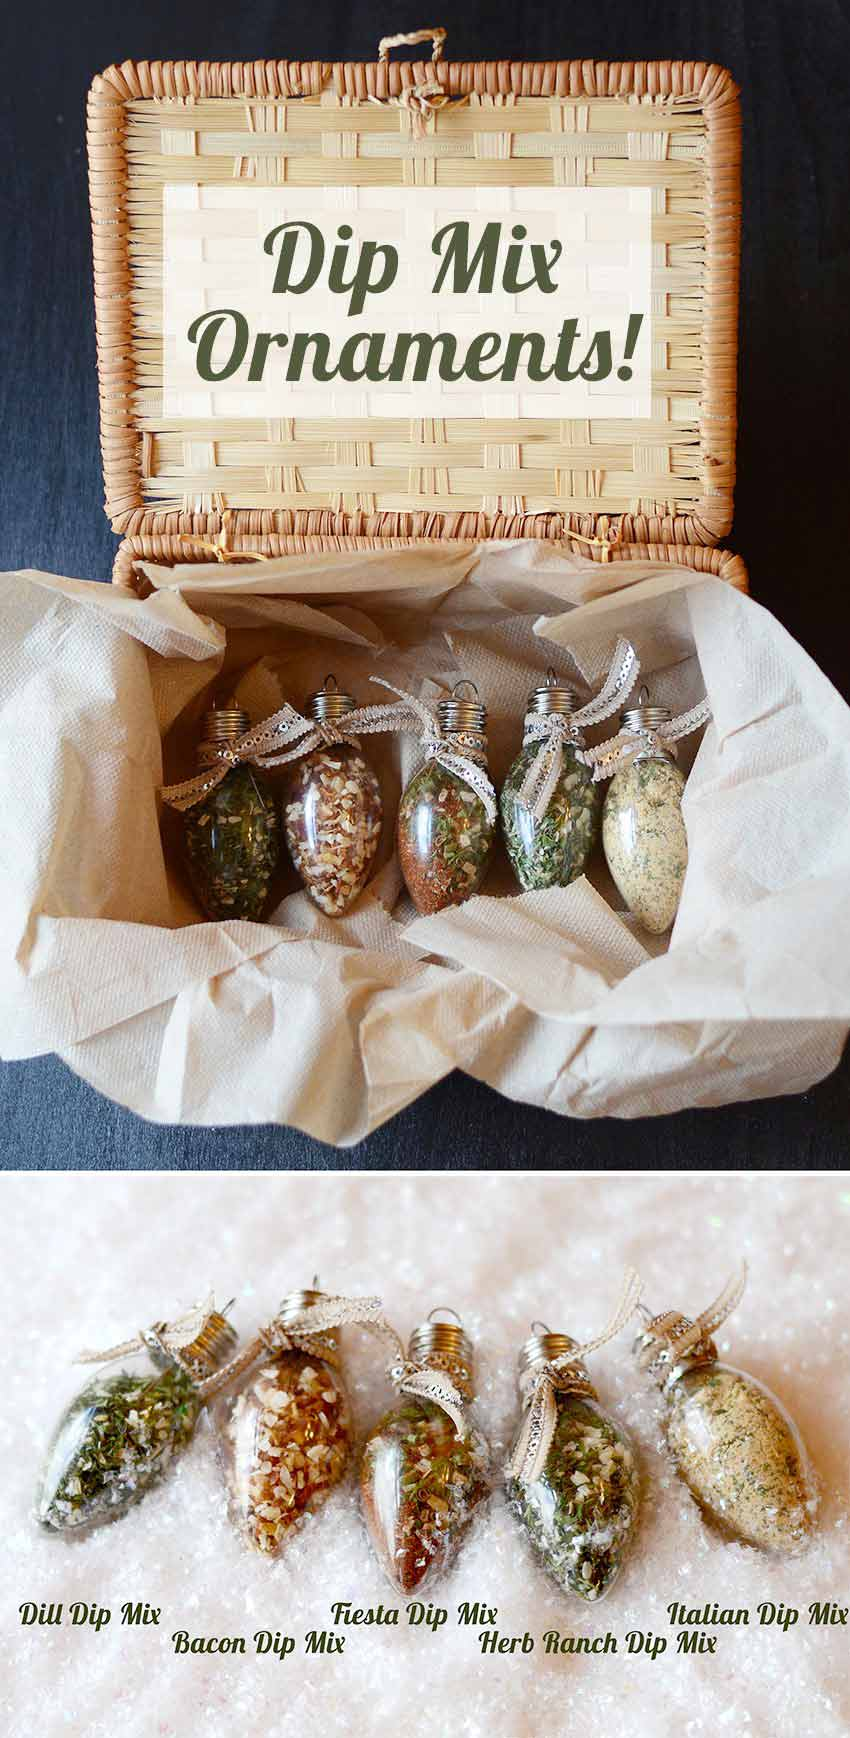 DIY Gifts for Your Parents | Cool and Easy Homemade Gift Ideas That Mom and Dad Will Love | Creative Christmas Gifts for Parents With Step by Step Instructions | Crafts and DIY Projects by DIY JOY | Dip-Mix-Ornaments #diy #diygifts #christmasgifts